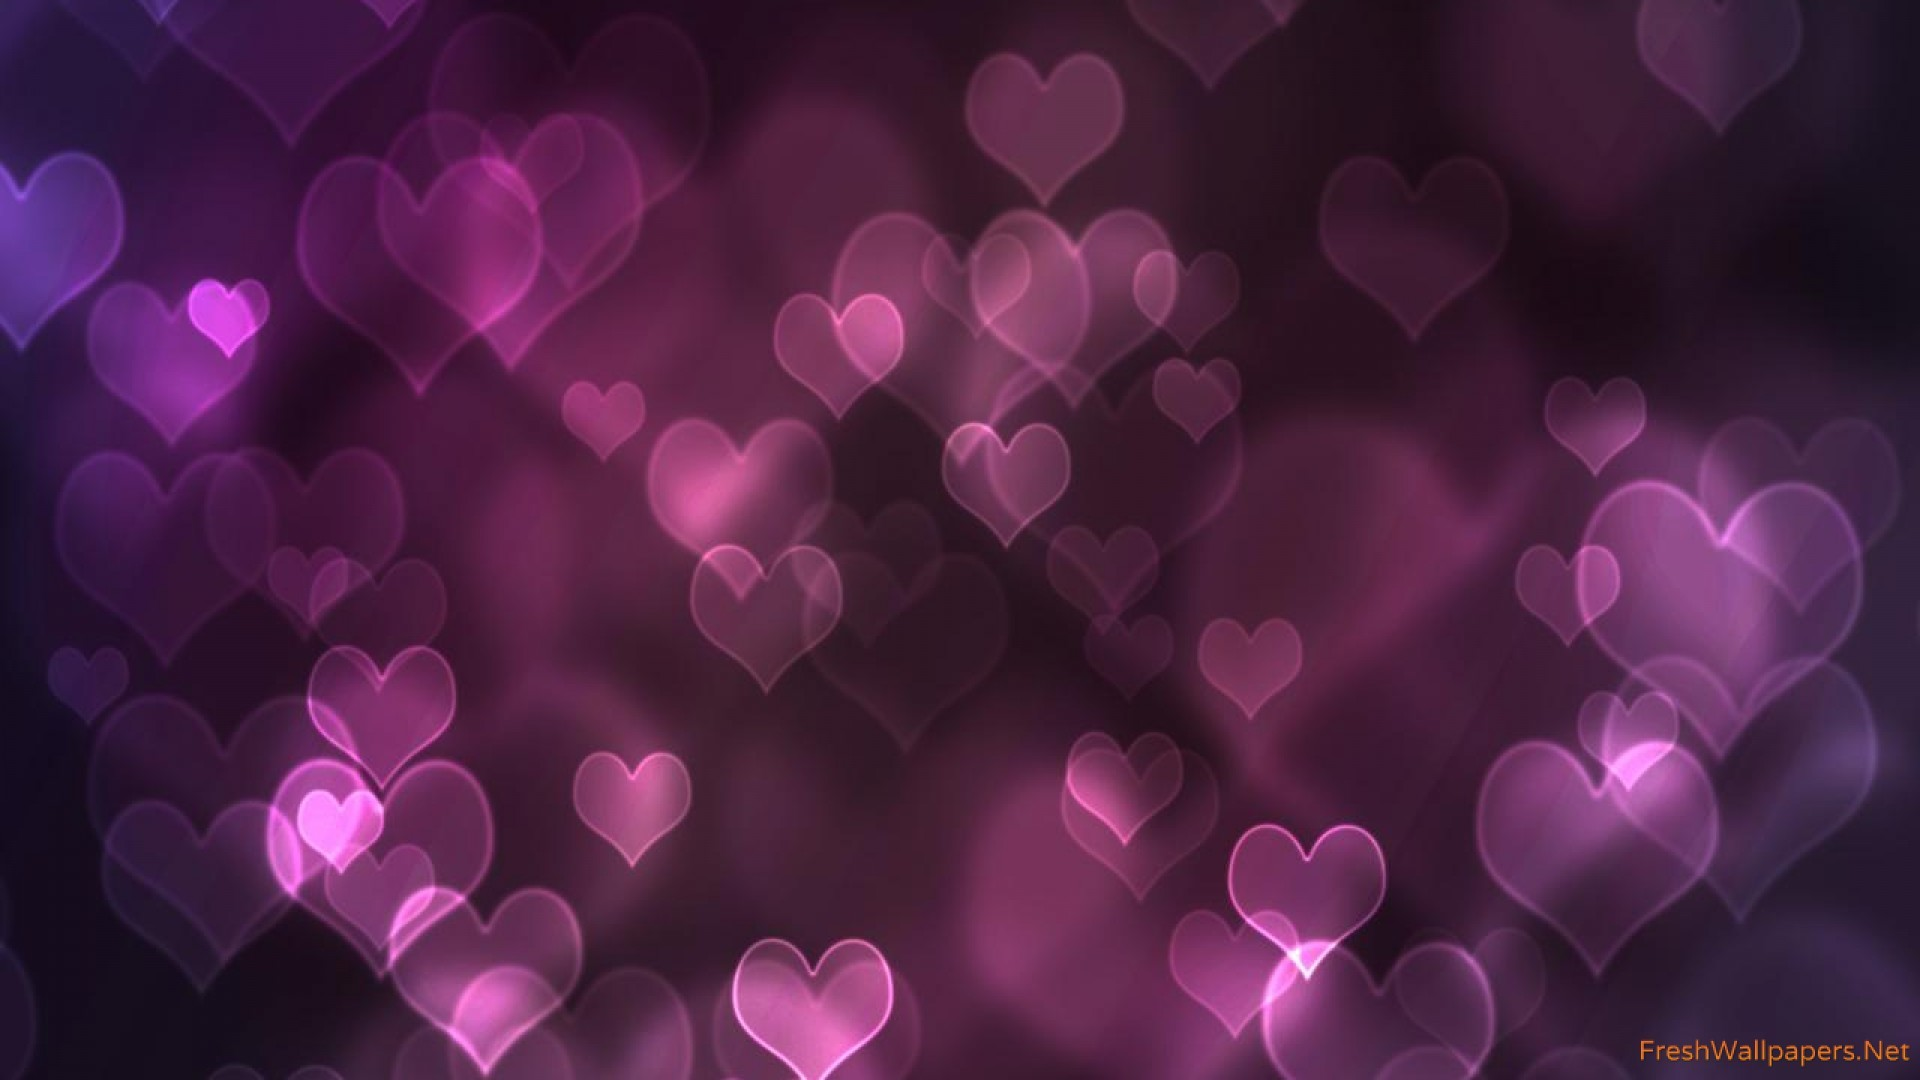 Pretty Wallpapers Rose Quotes Love Purple Wallpaper 183 ① Wallpapertag